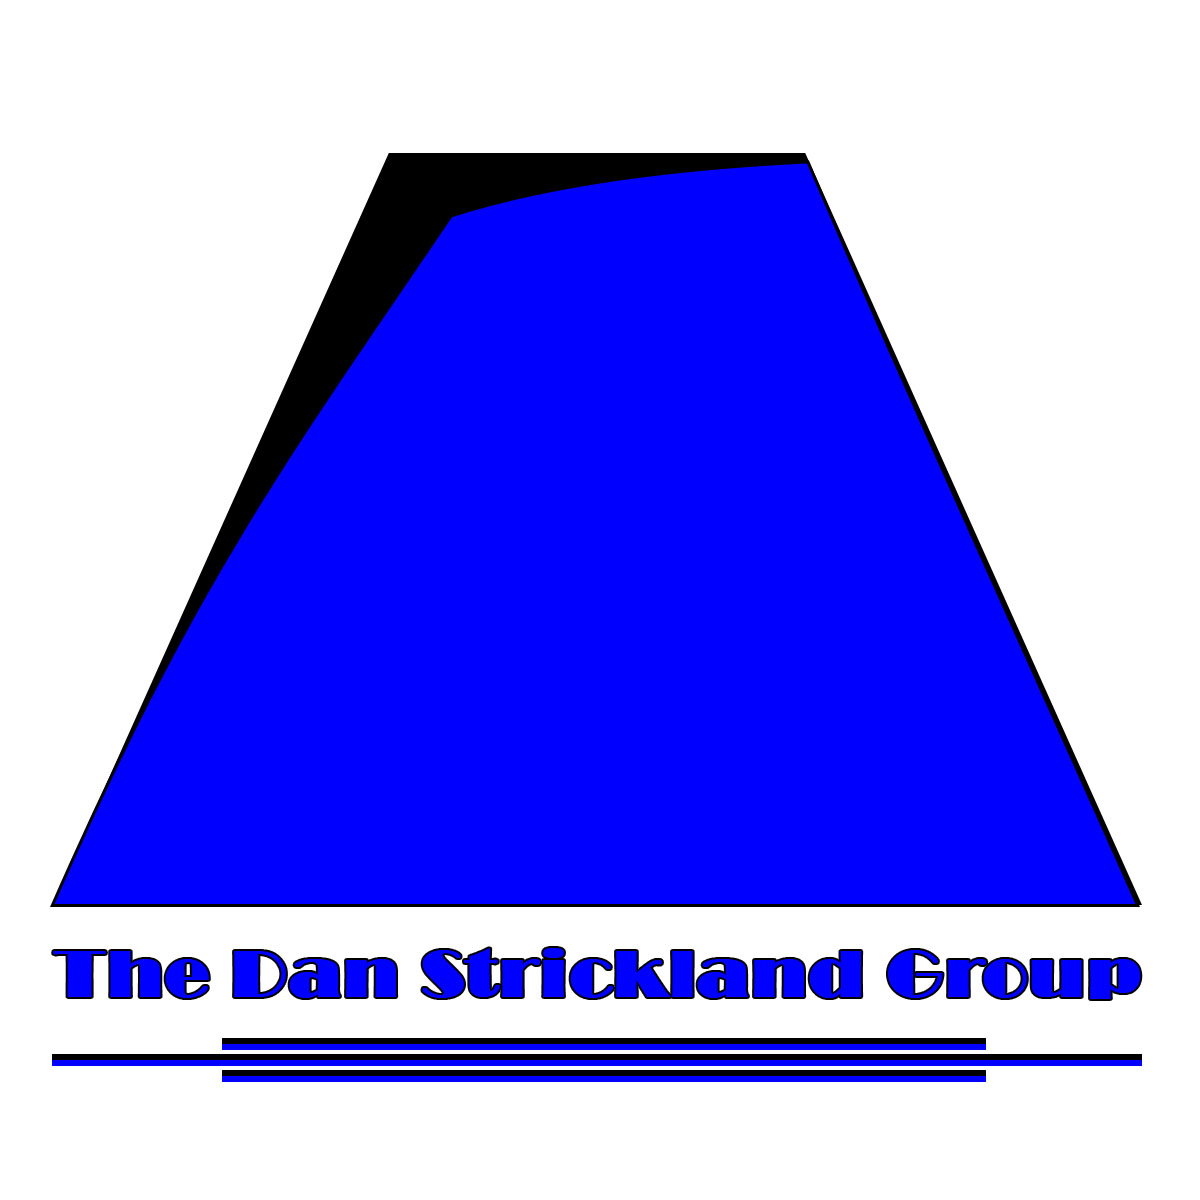 Logo Design by Moag - Entry No. 293 in the Logo Design Contest Creative Logo Design for The Dan Strickland Group.